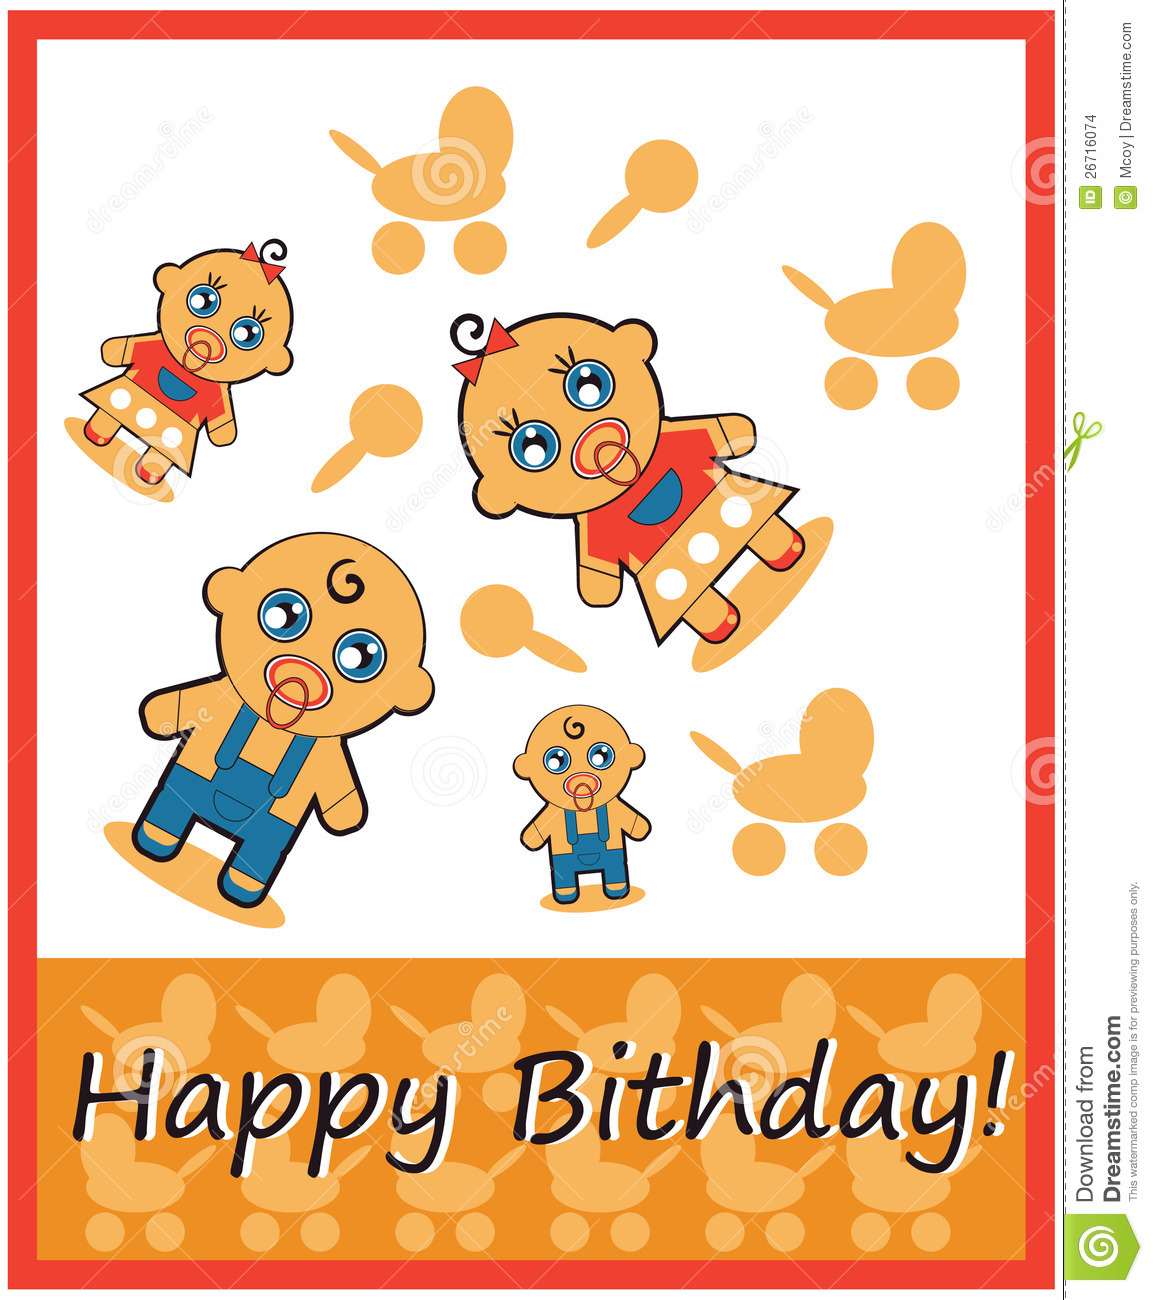 Happy Birthday Boy And Girl Stock Images - Image: 26716074